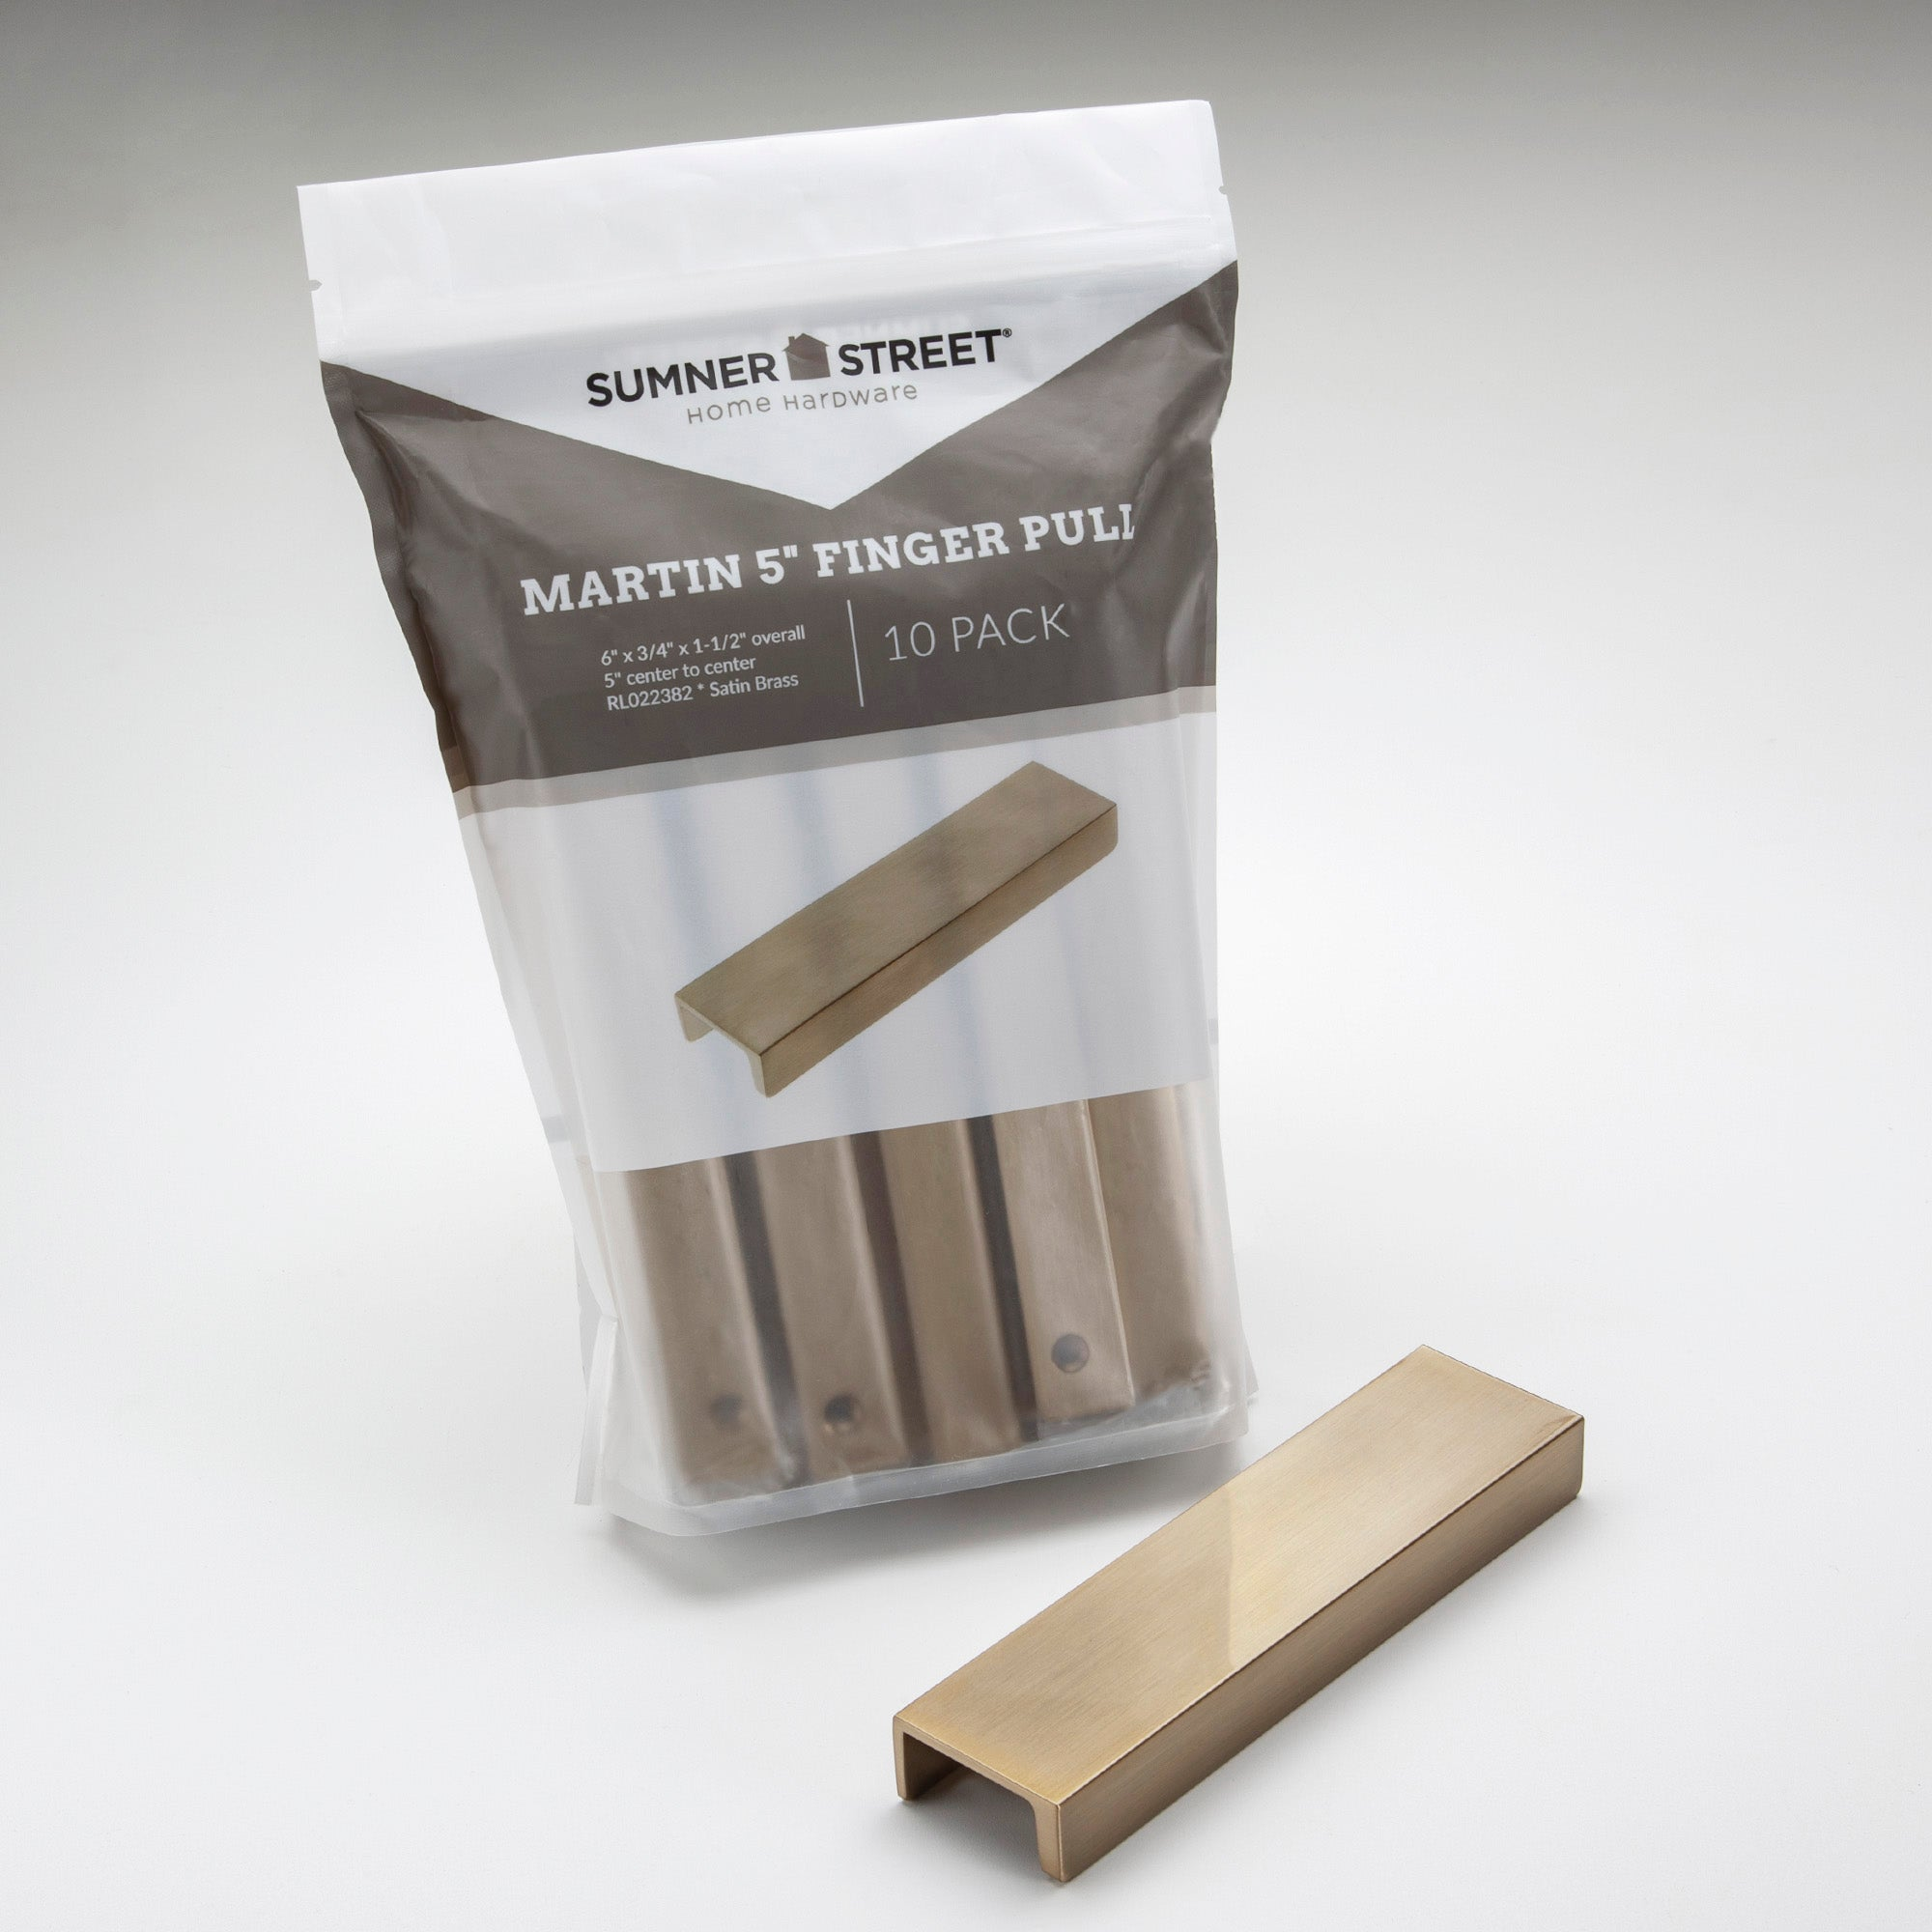 10 Pack Martin 5 Finger Pull Available In Additional Finishes Sumner Street Home Hardware